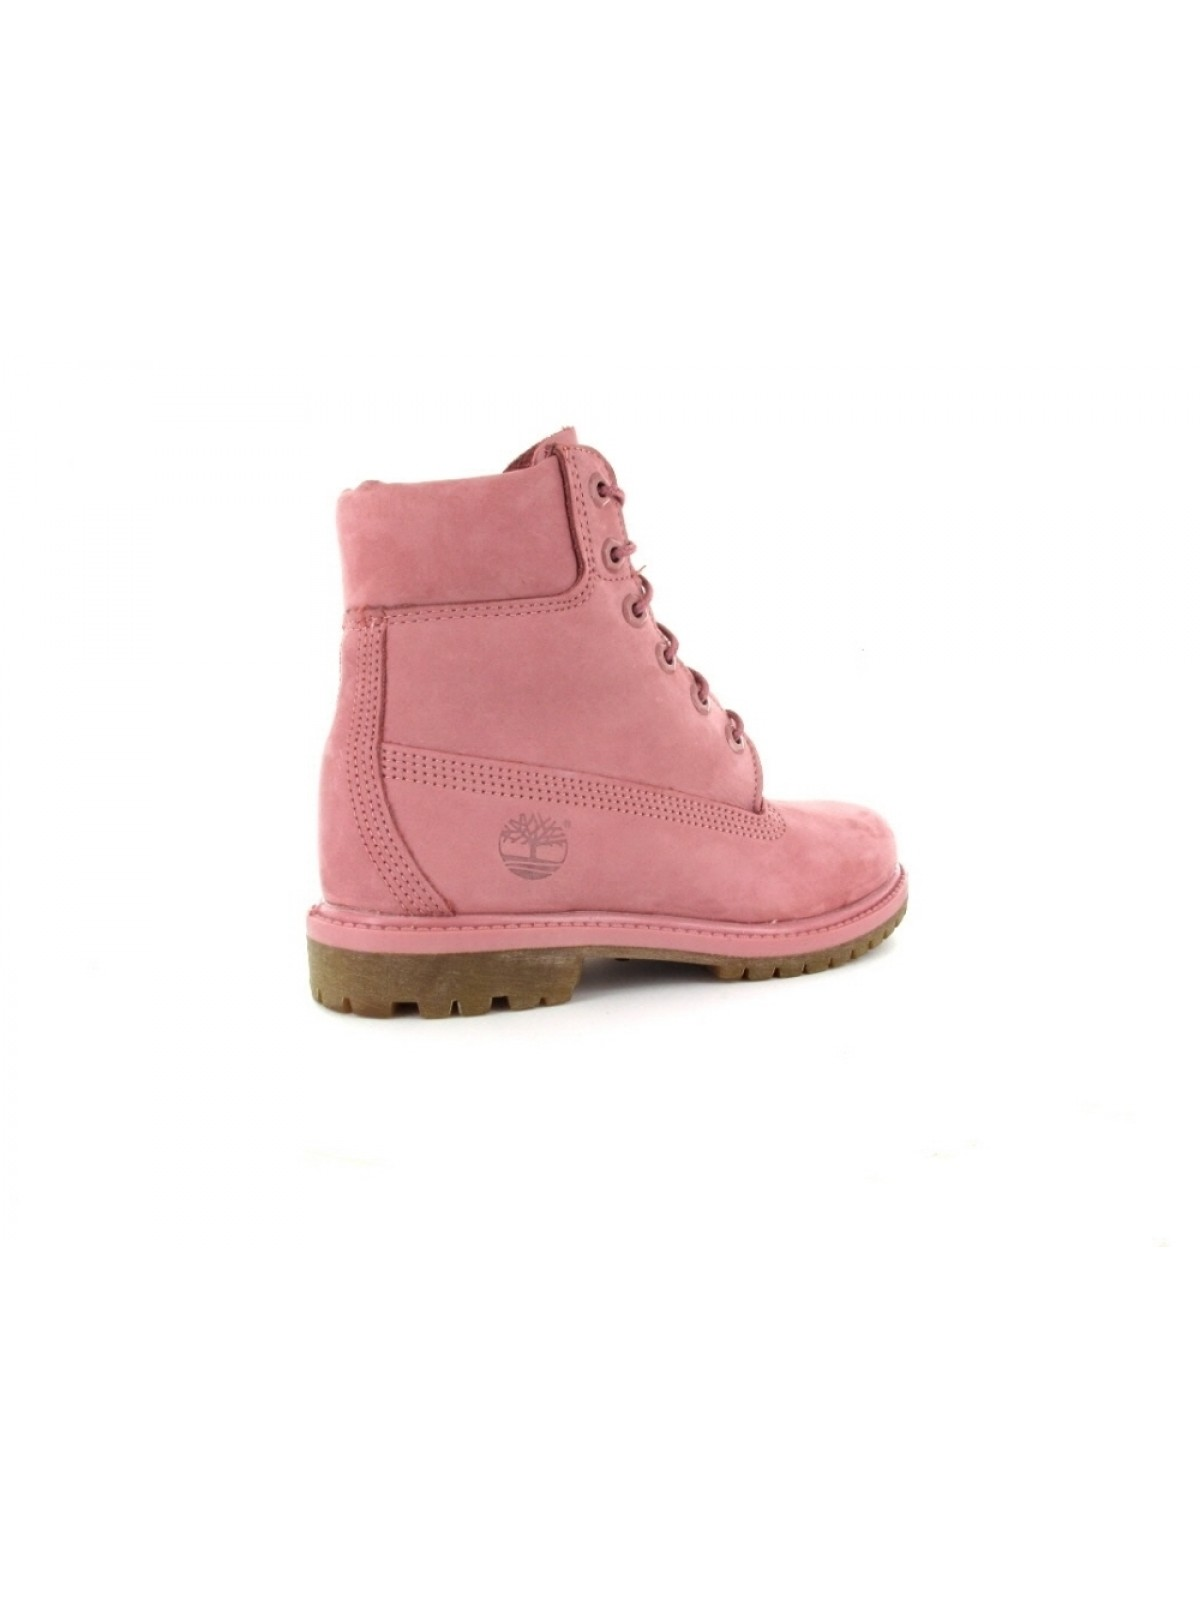 timberland icon 6 femme premium boots rose icon timberland marques. Black Bedroom Furniture Sets. Home Design Ideas